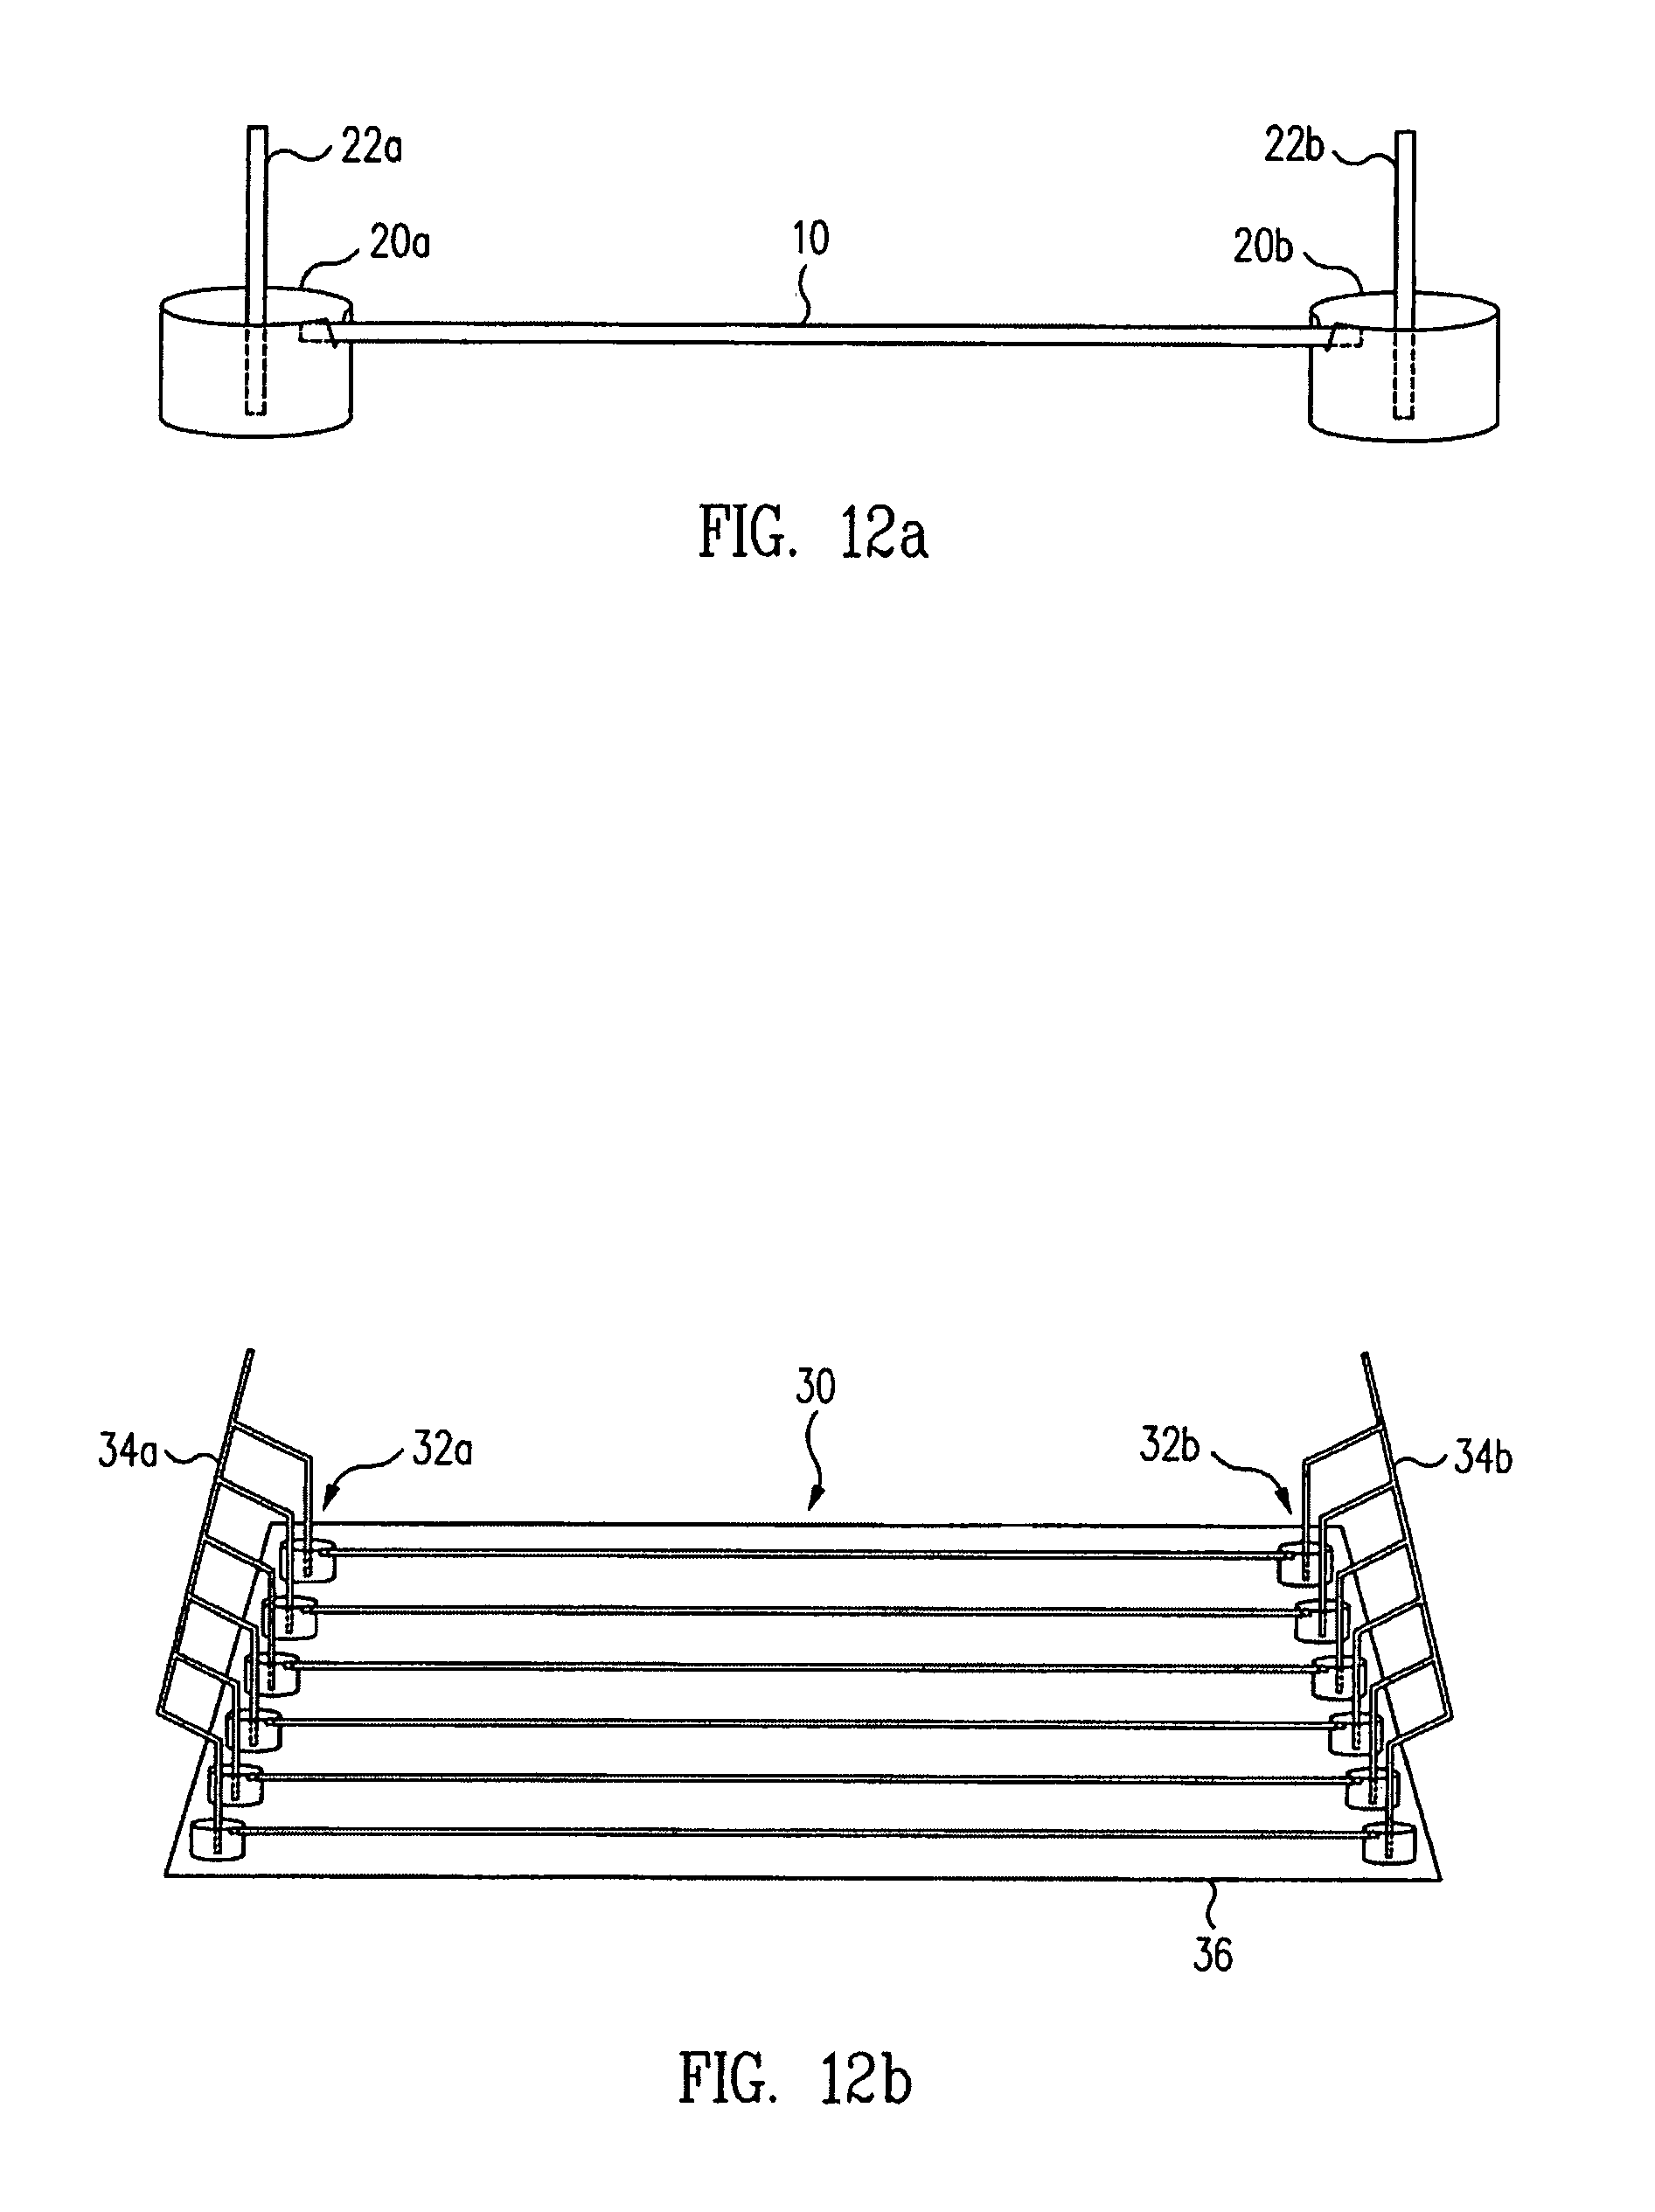 Patent Us7935479 Methods And Devices For Analyte Detection Apparatus Folding Fitted Sheets Diagram Image Drawing